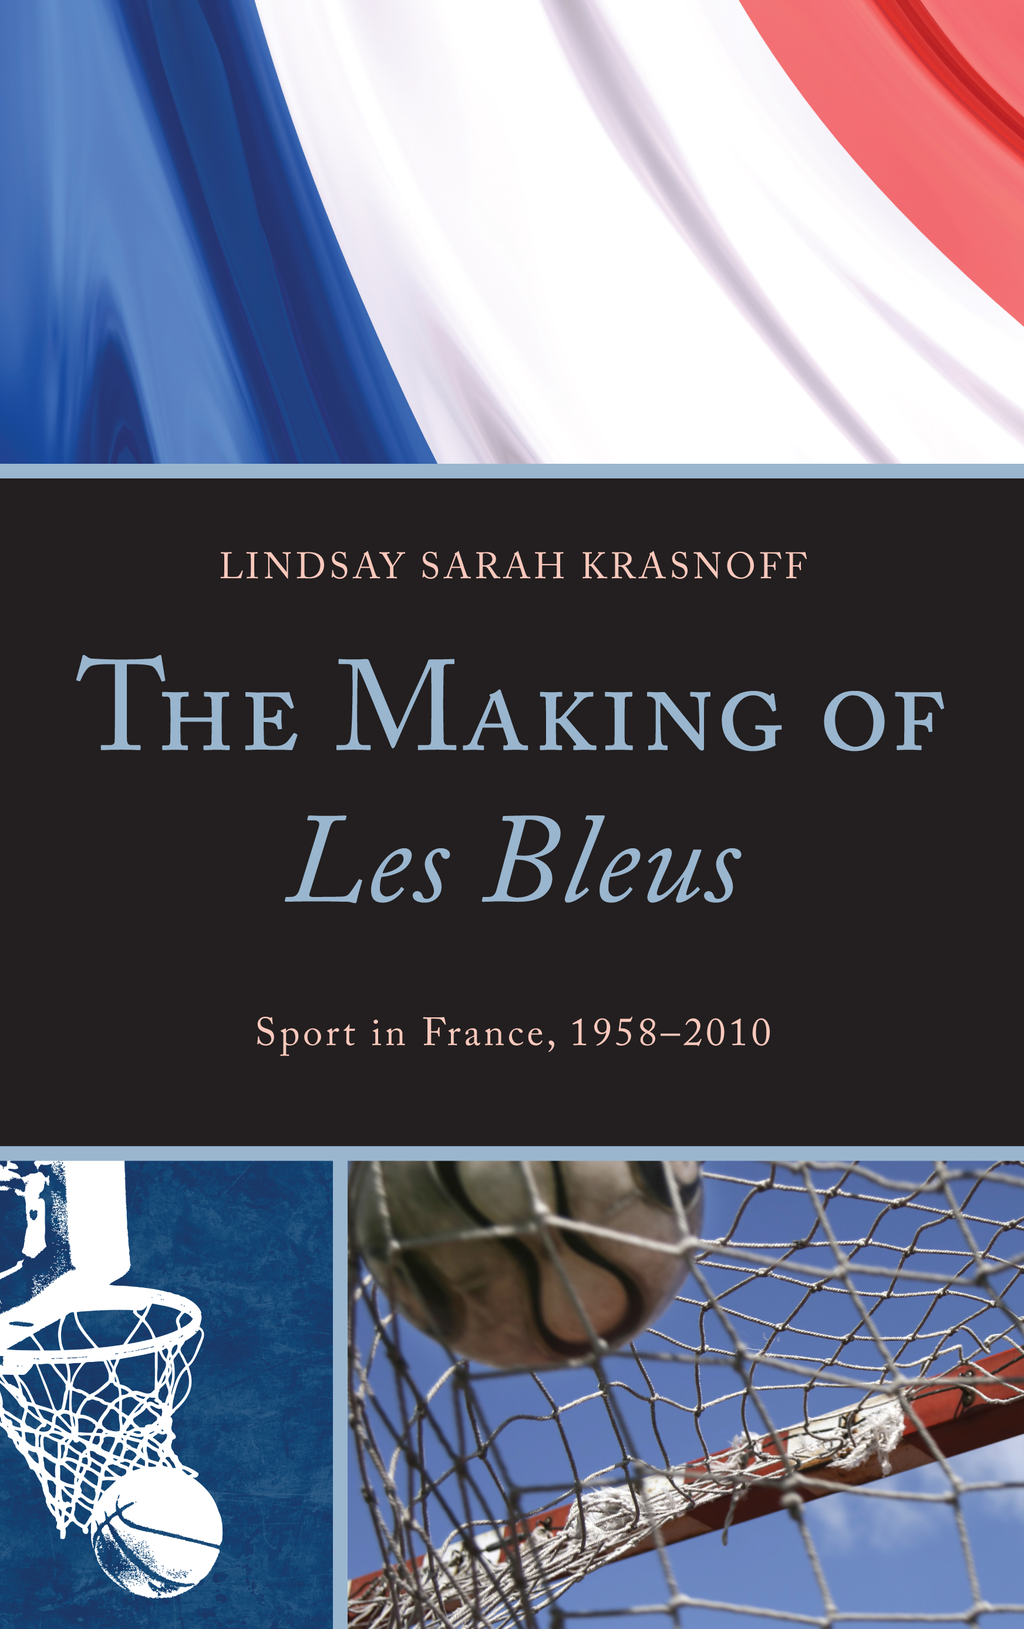 The Making of Les Bleus